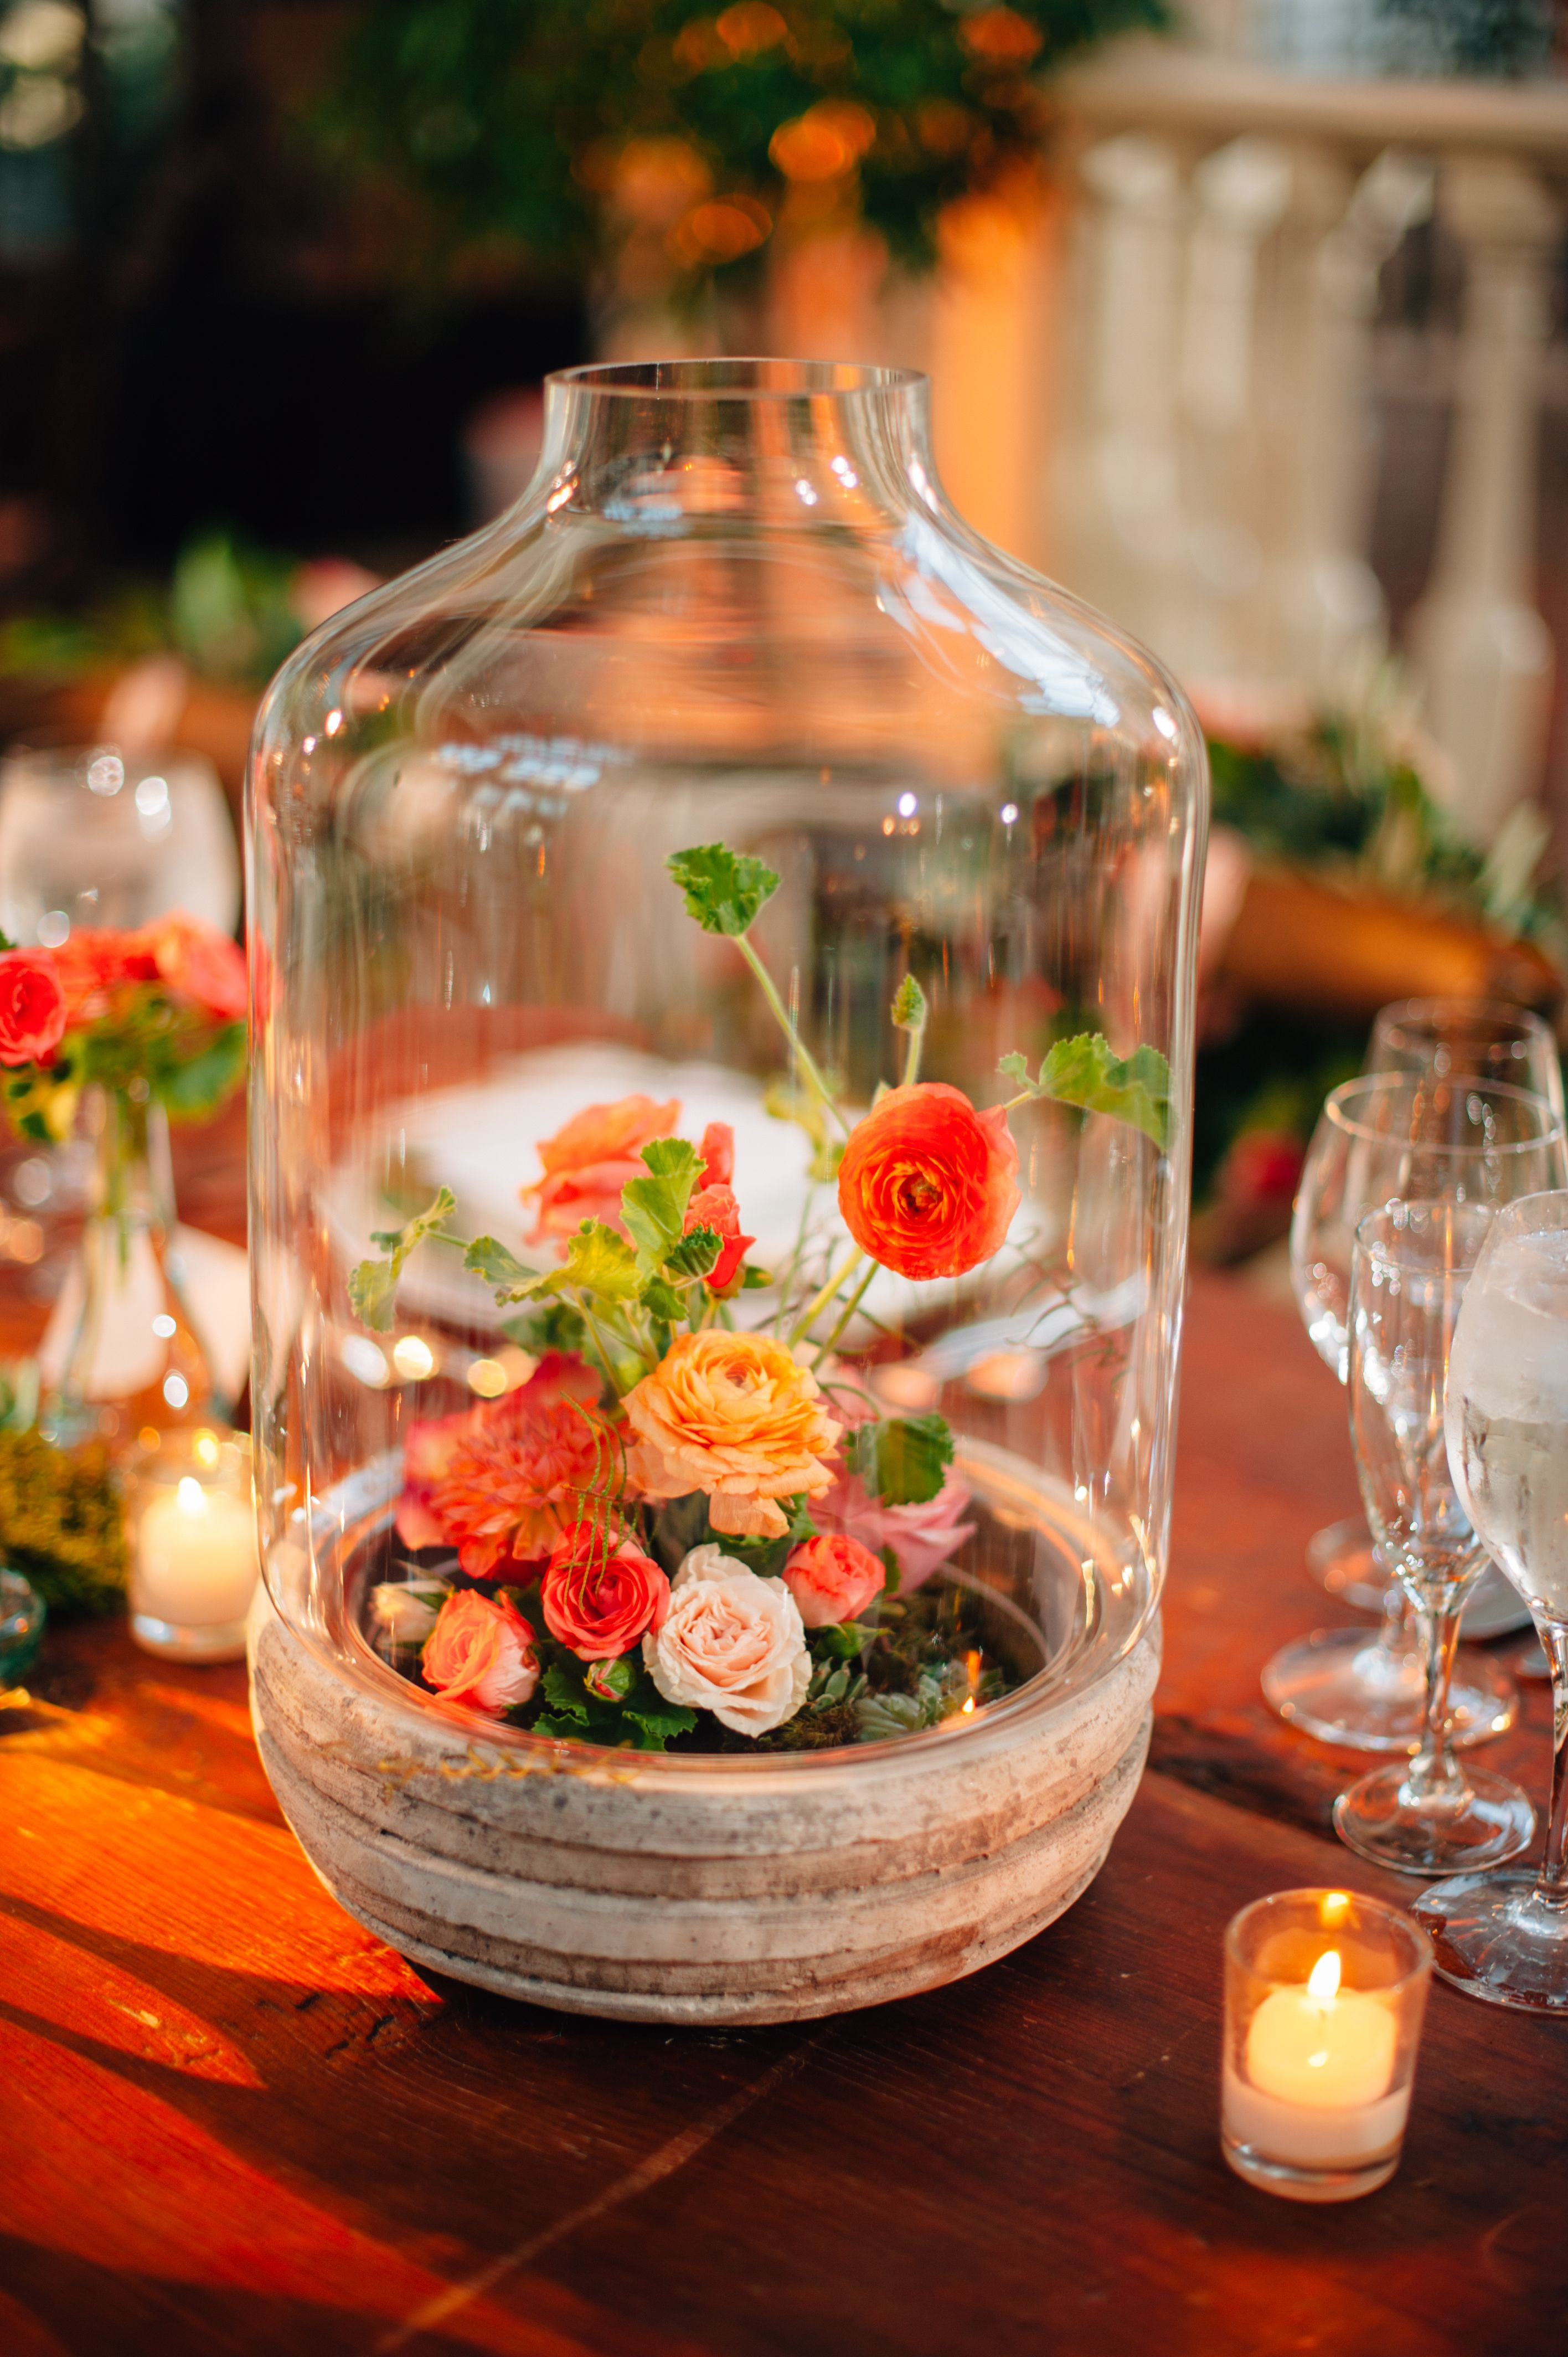 Centerpieces included bell jars filled with succulents